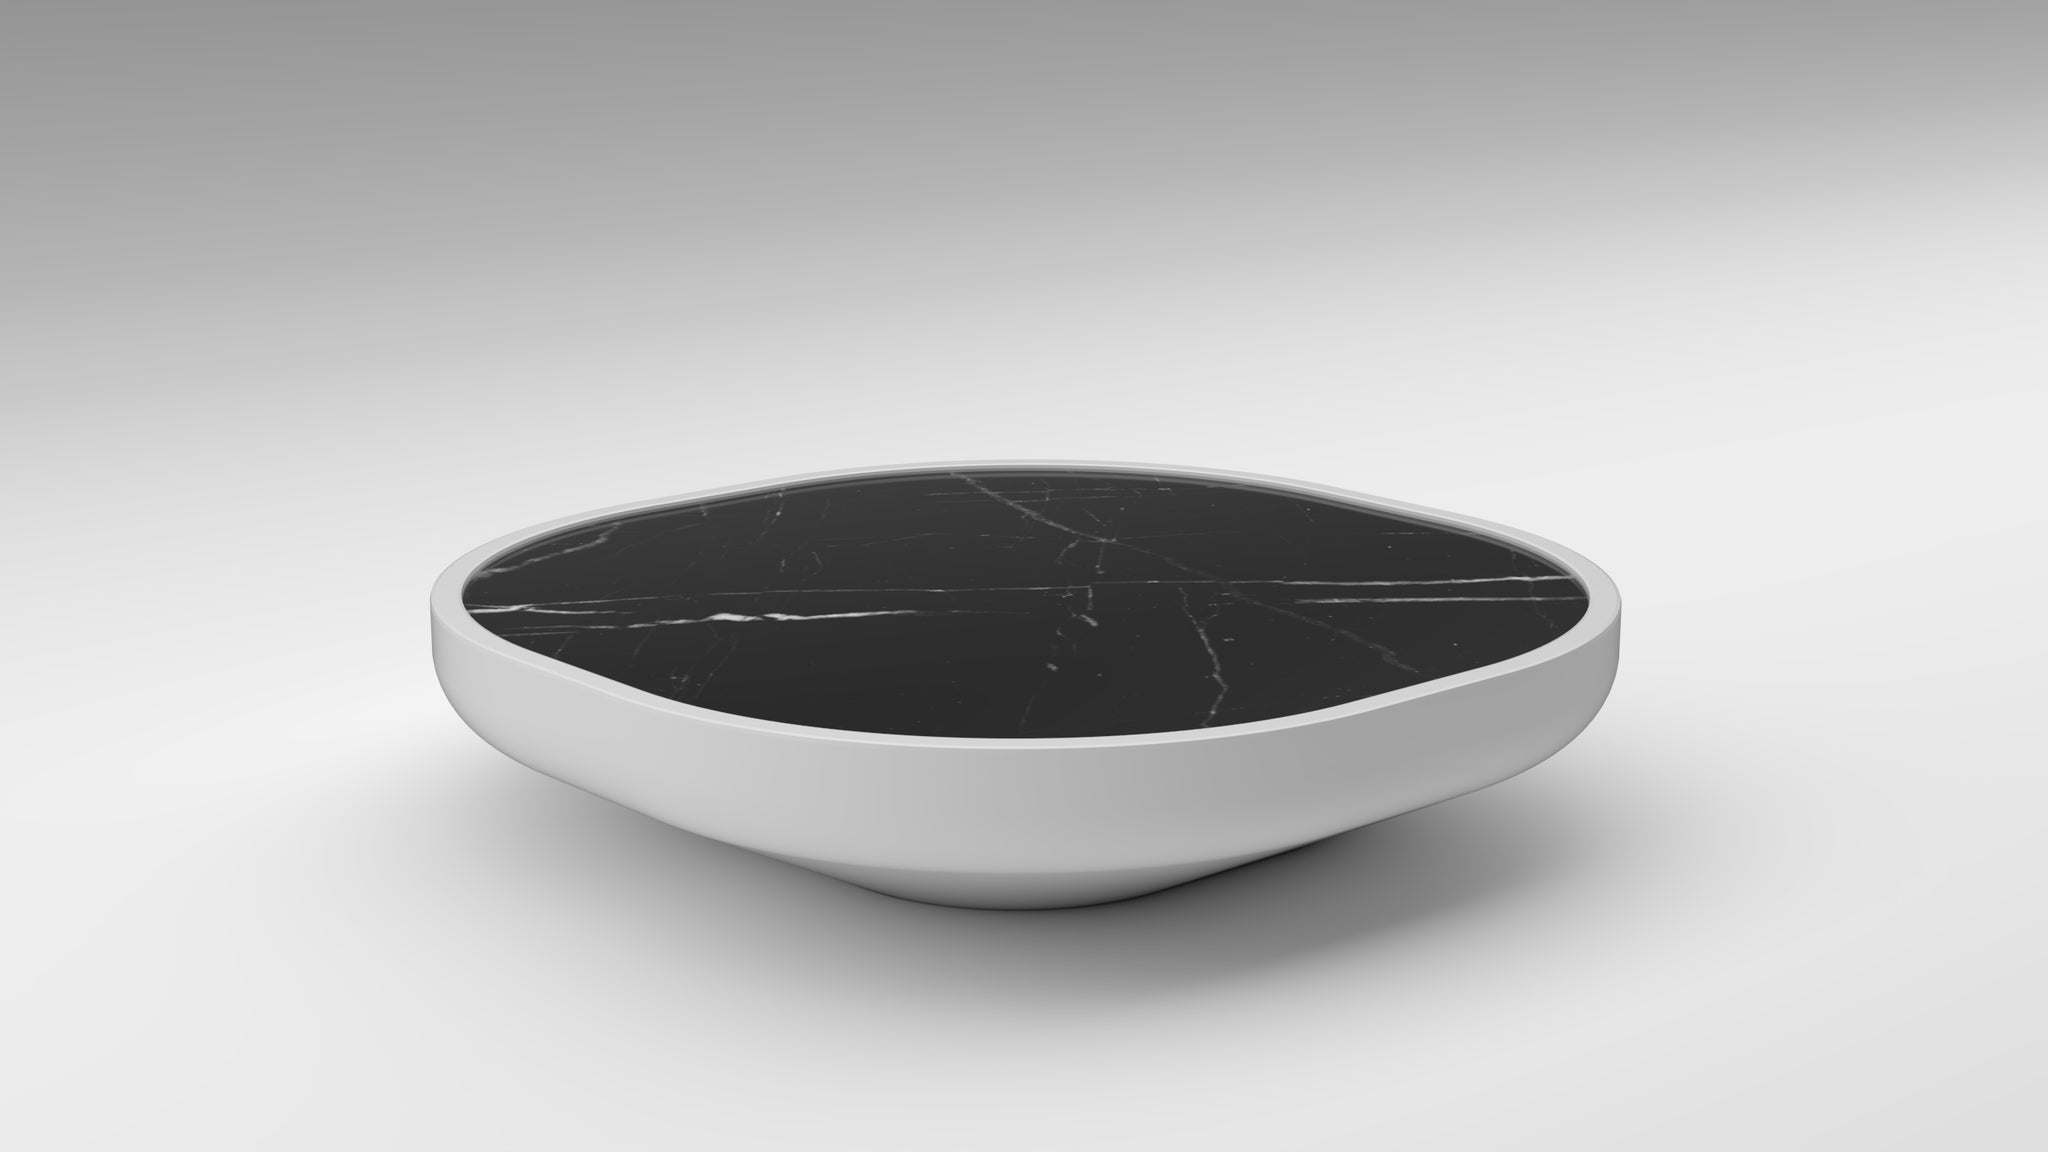 nero marquina, black marble, black marble coffee table, monochrome coffee table, iris mini, iris mini akar, low coffee table